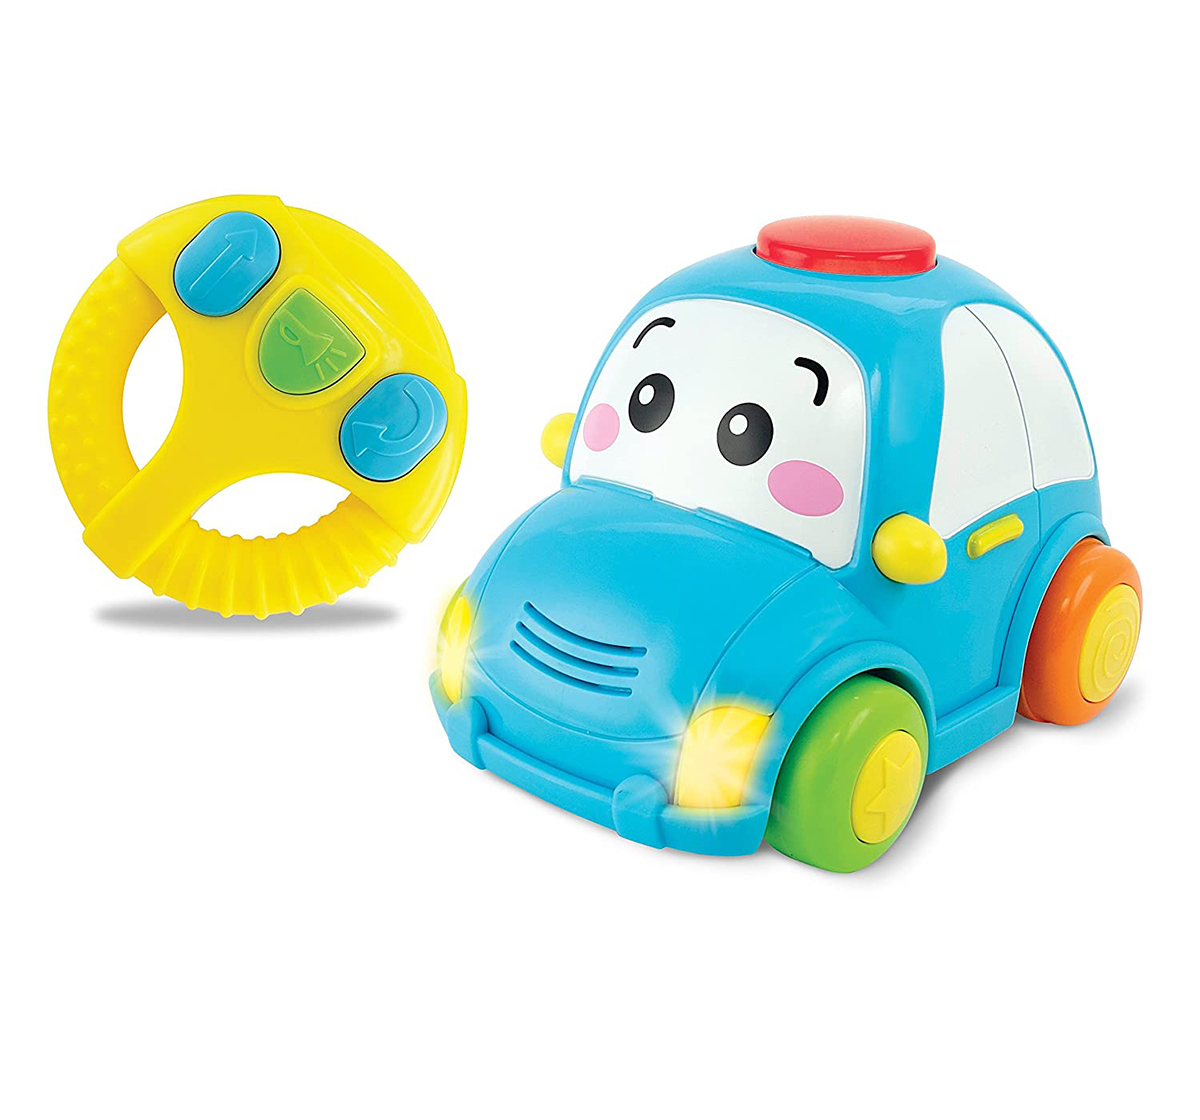 WinFun | Winfun - Remote Control -  Light & Sounds Car Learning Toys for Kids age 12M+